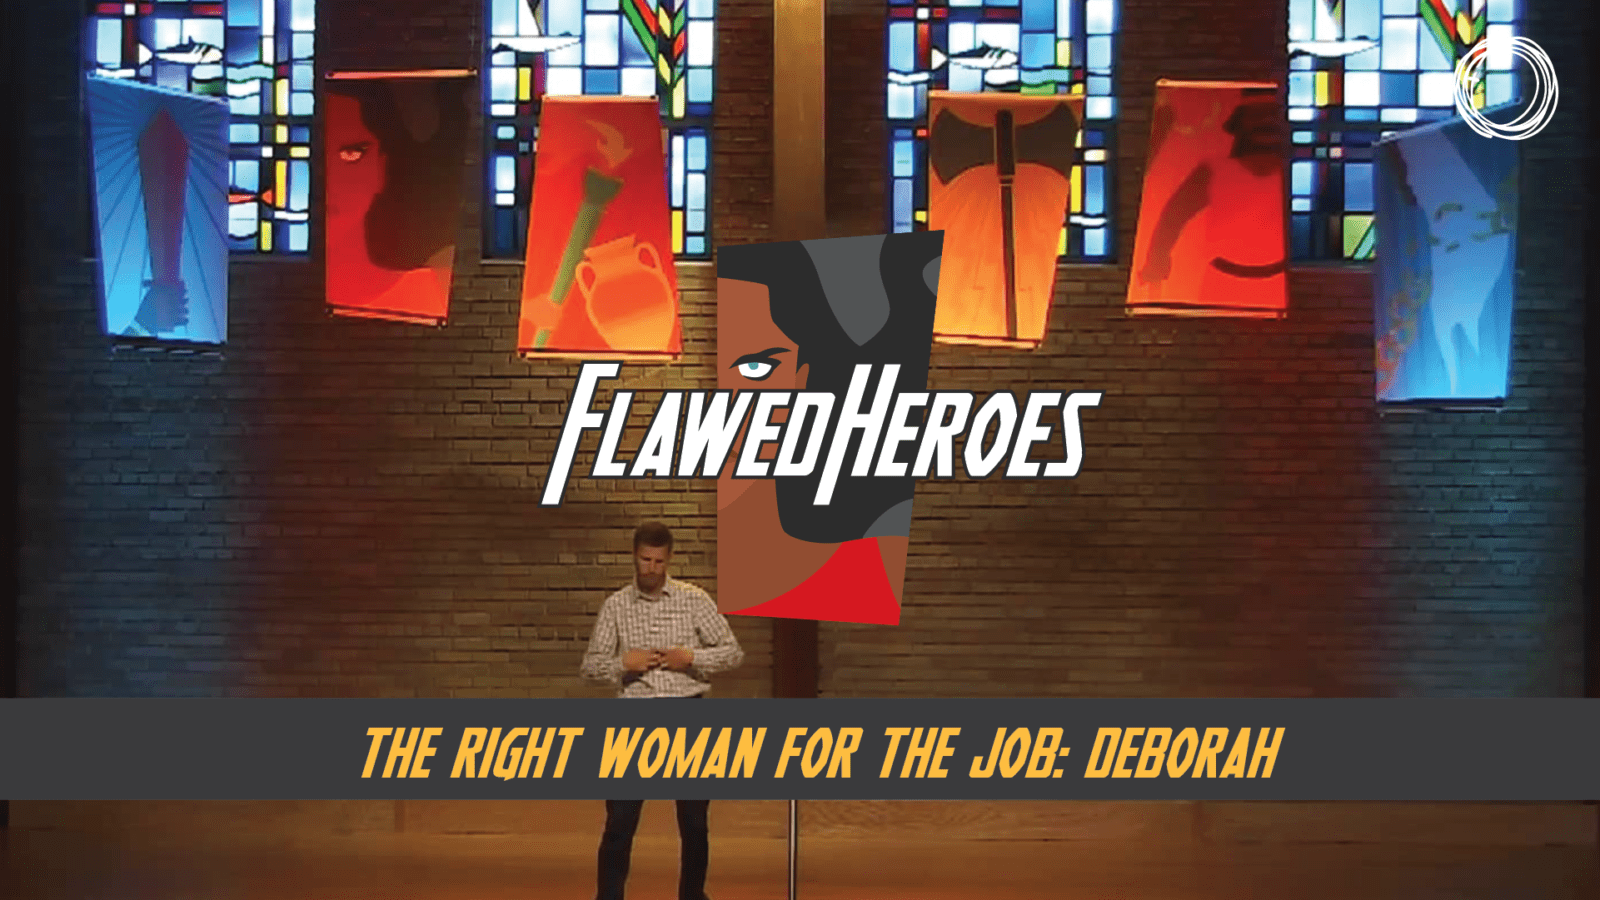 The Right Woman for the Job: Deborah